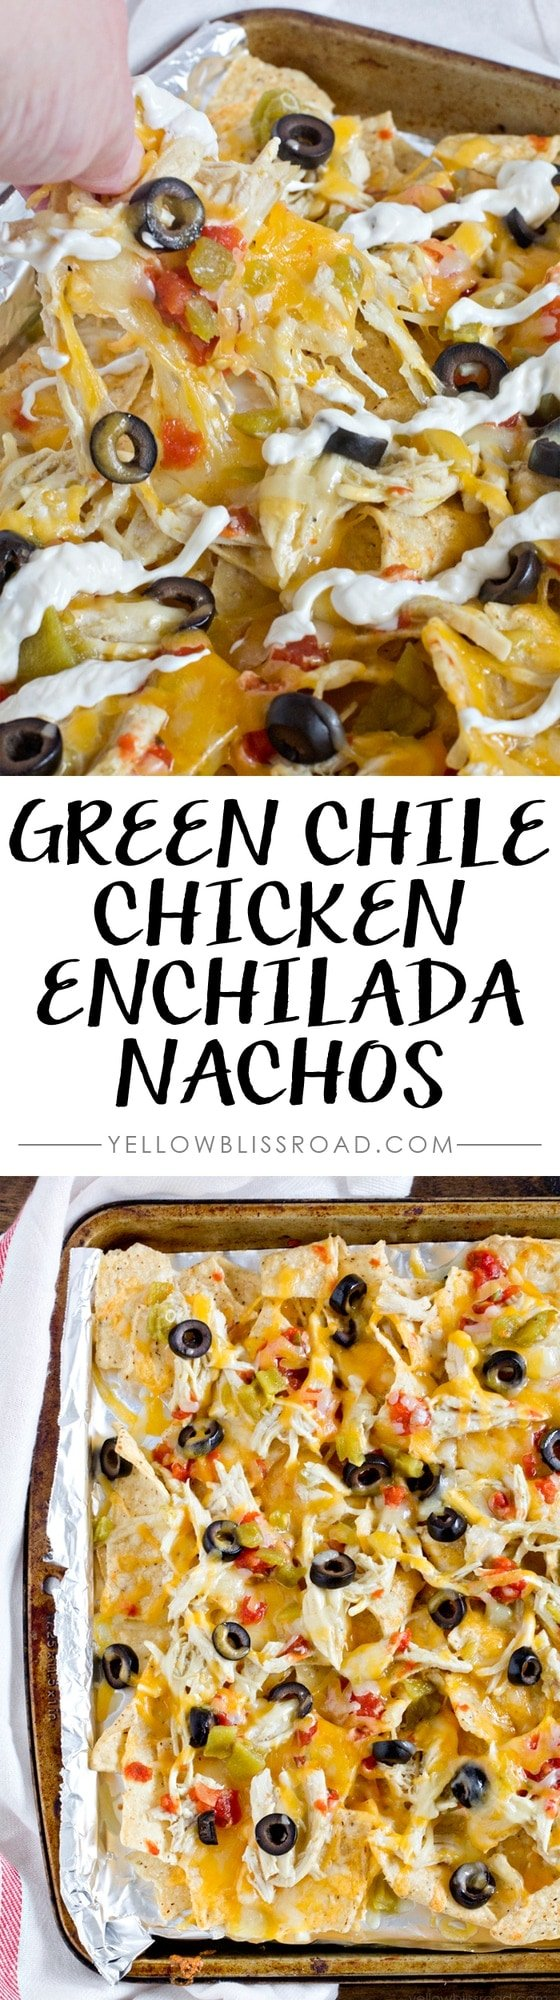 Green Chile Chicken Enchilada Nachos - Great for snacking or to feed a crowd on game day!